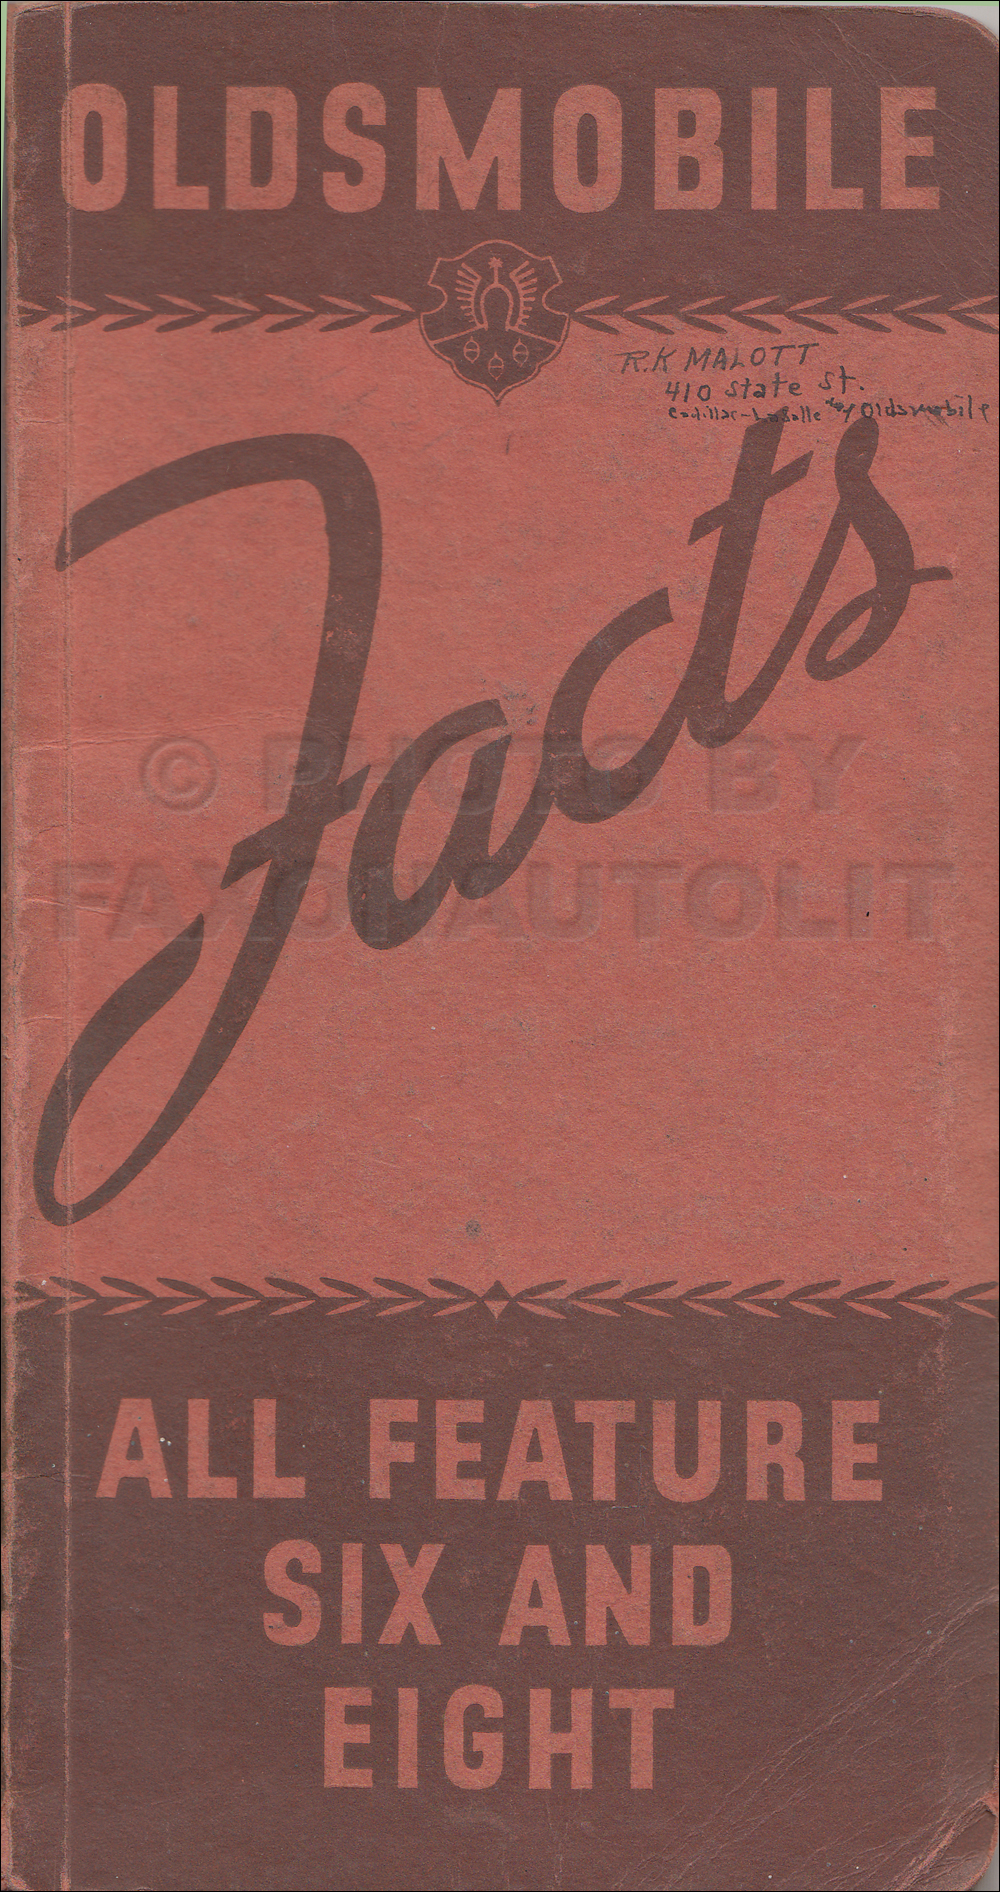 1934 Oldsmobile Facts Book Original